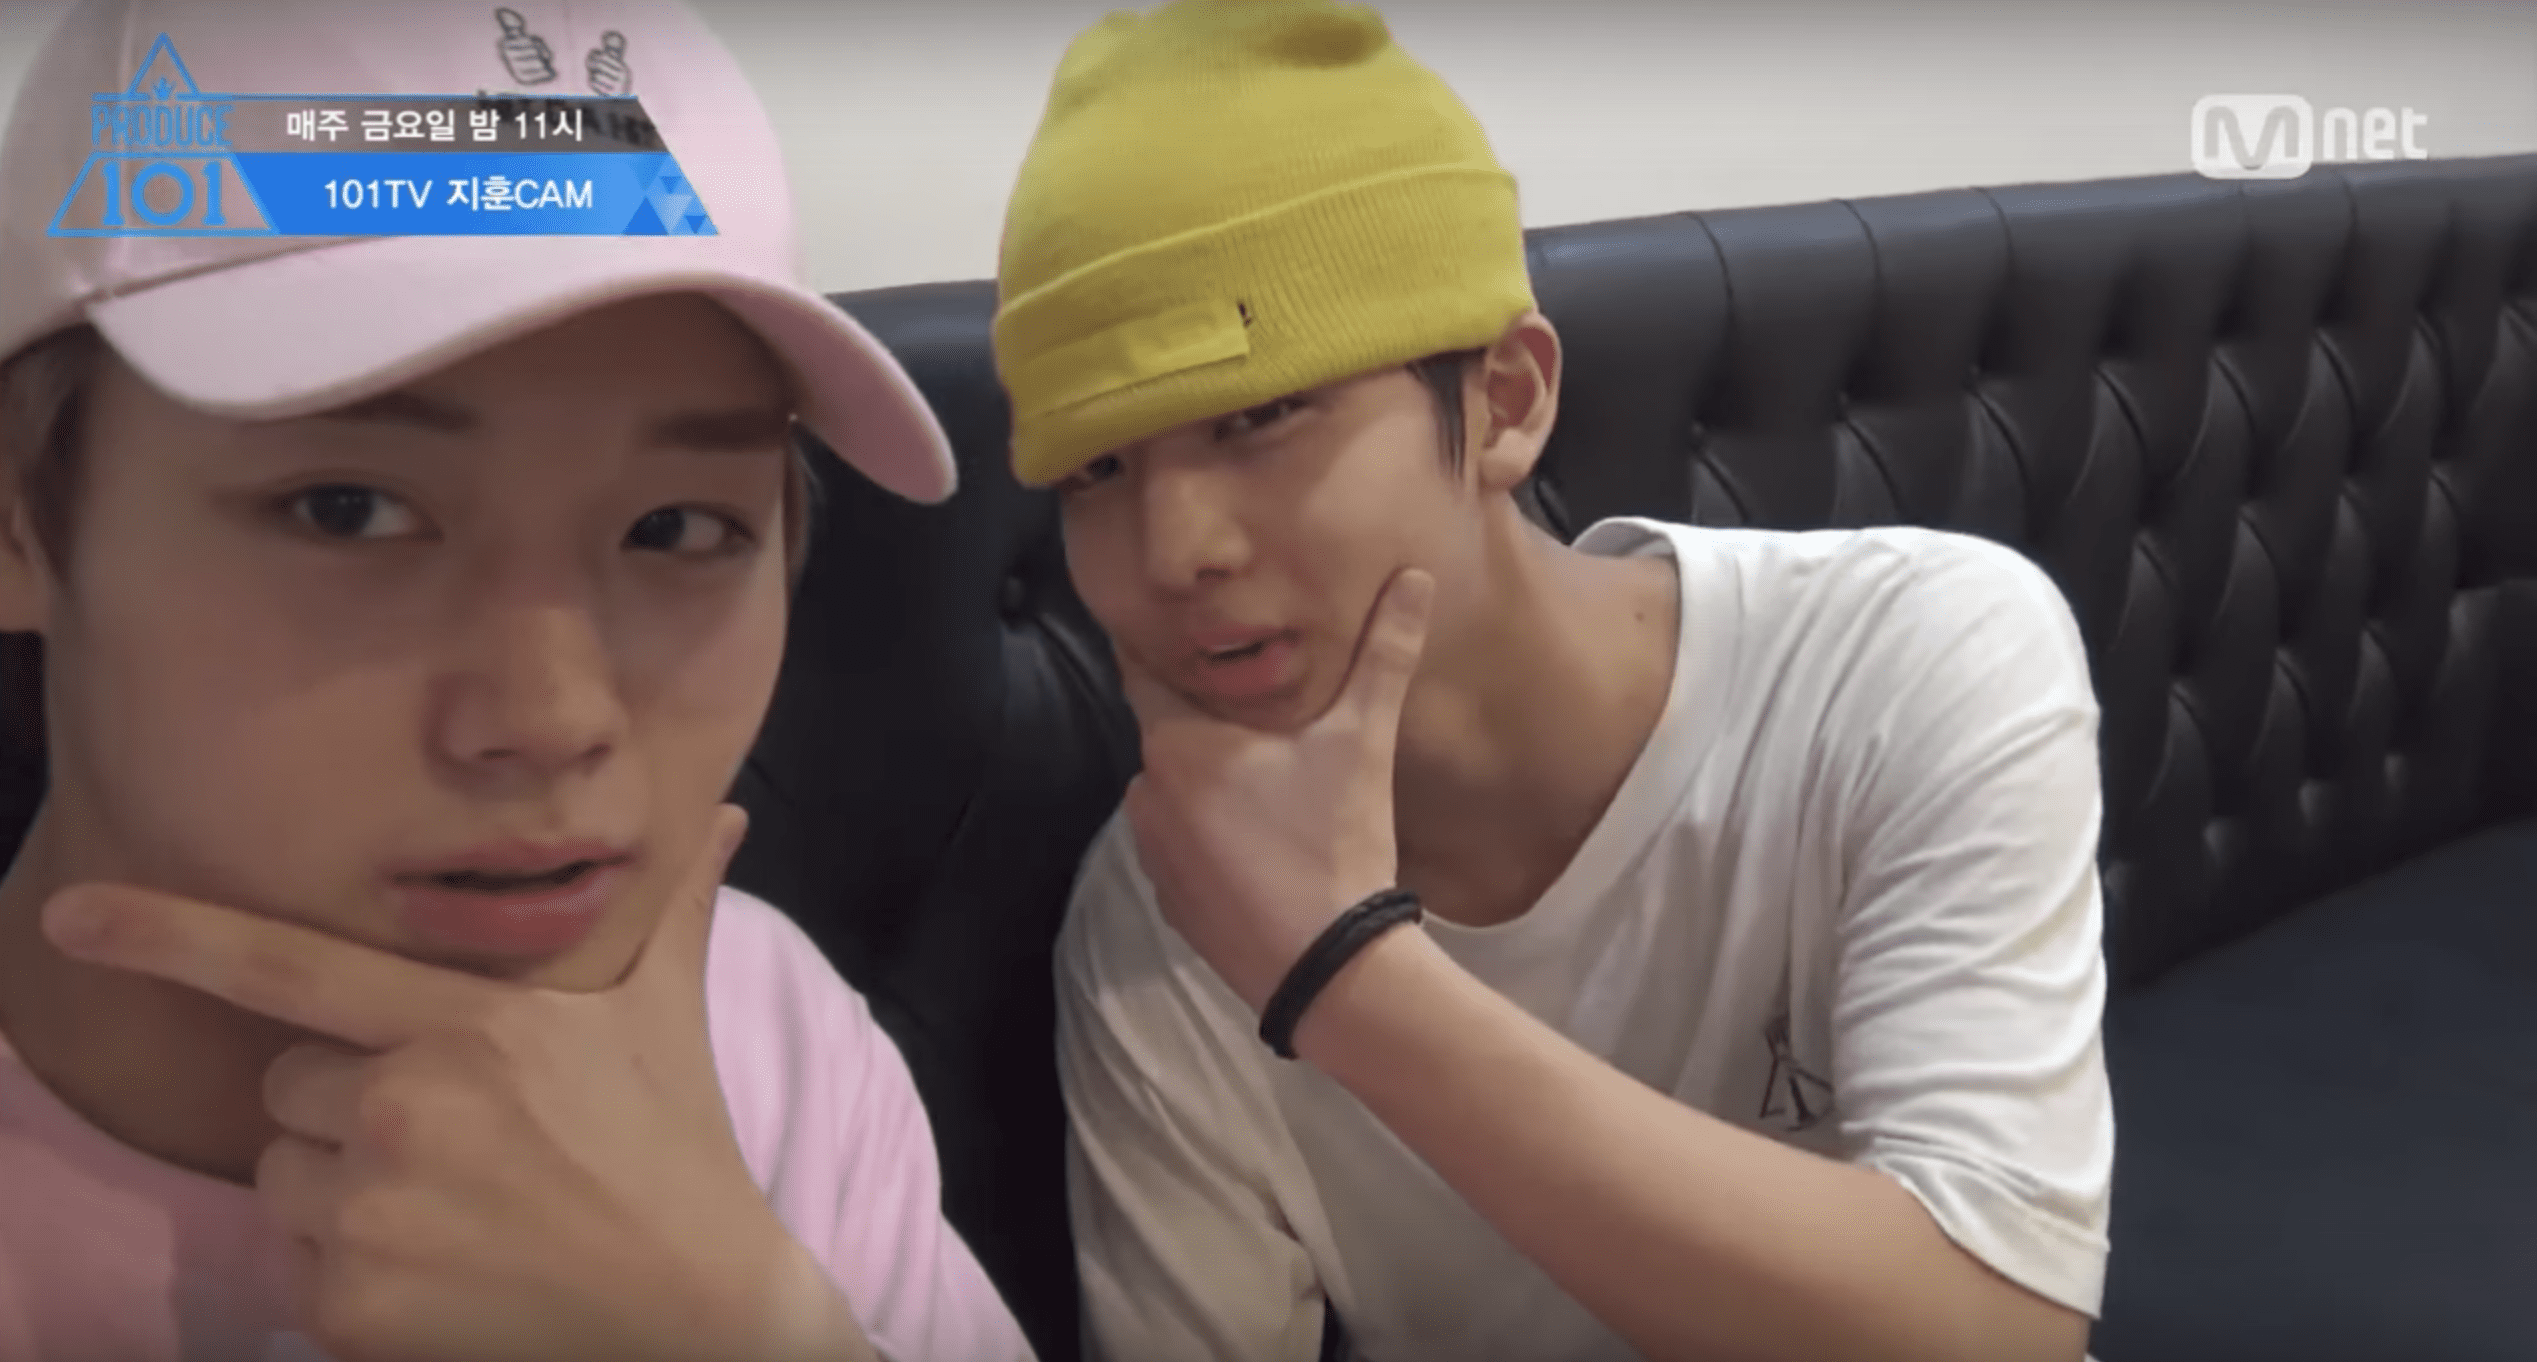 Watch: Produce 101 Season 2 Trainees Talk About Skin Care And Search For Their Look-Alikes In Self-Cam Video